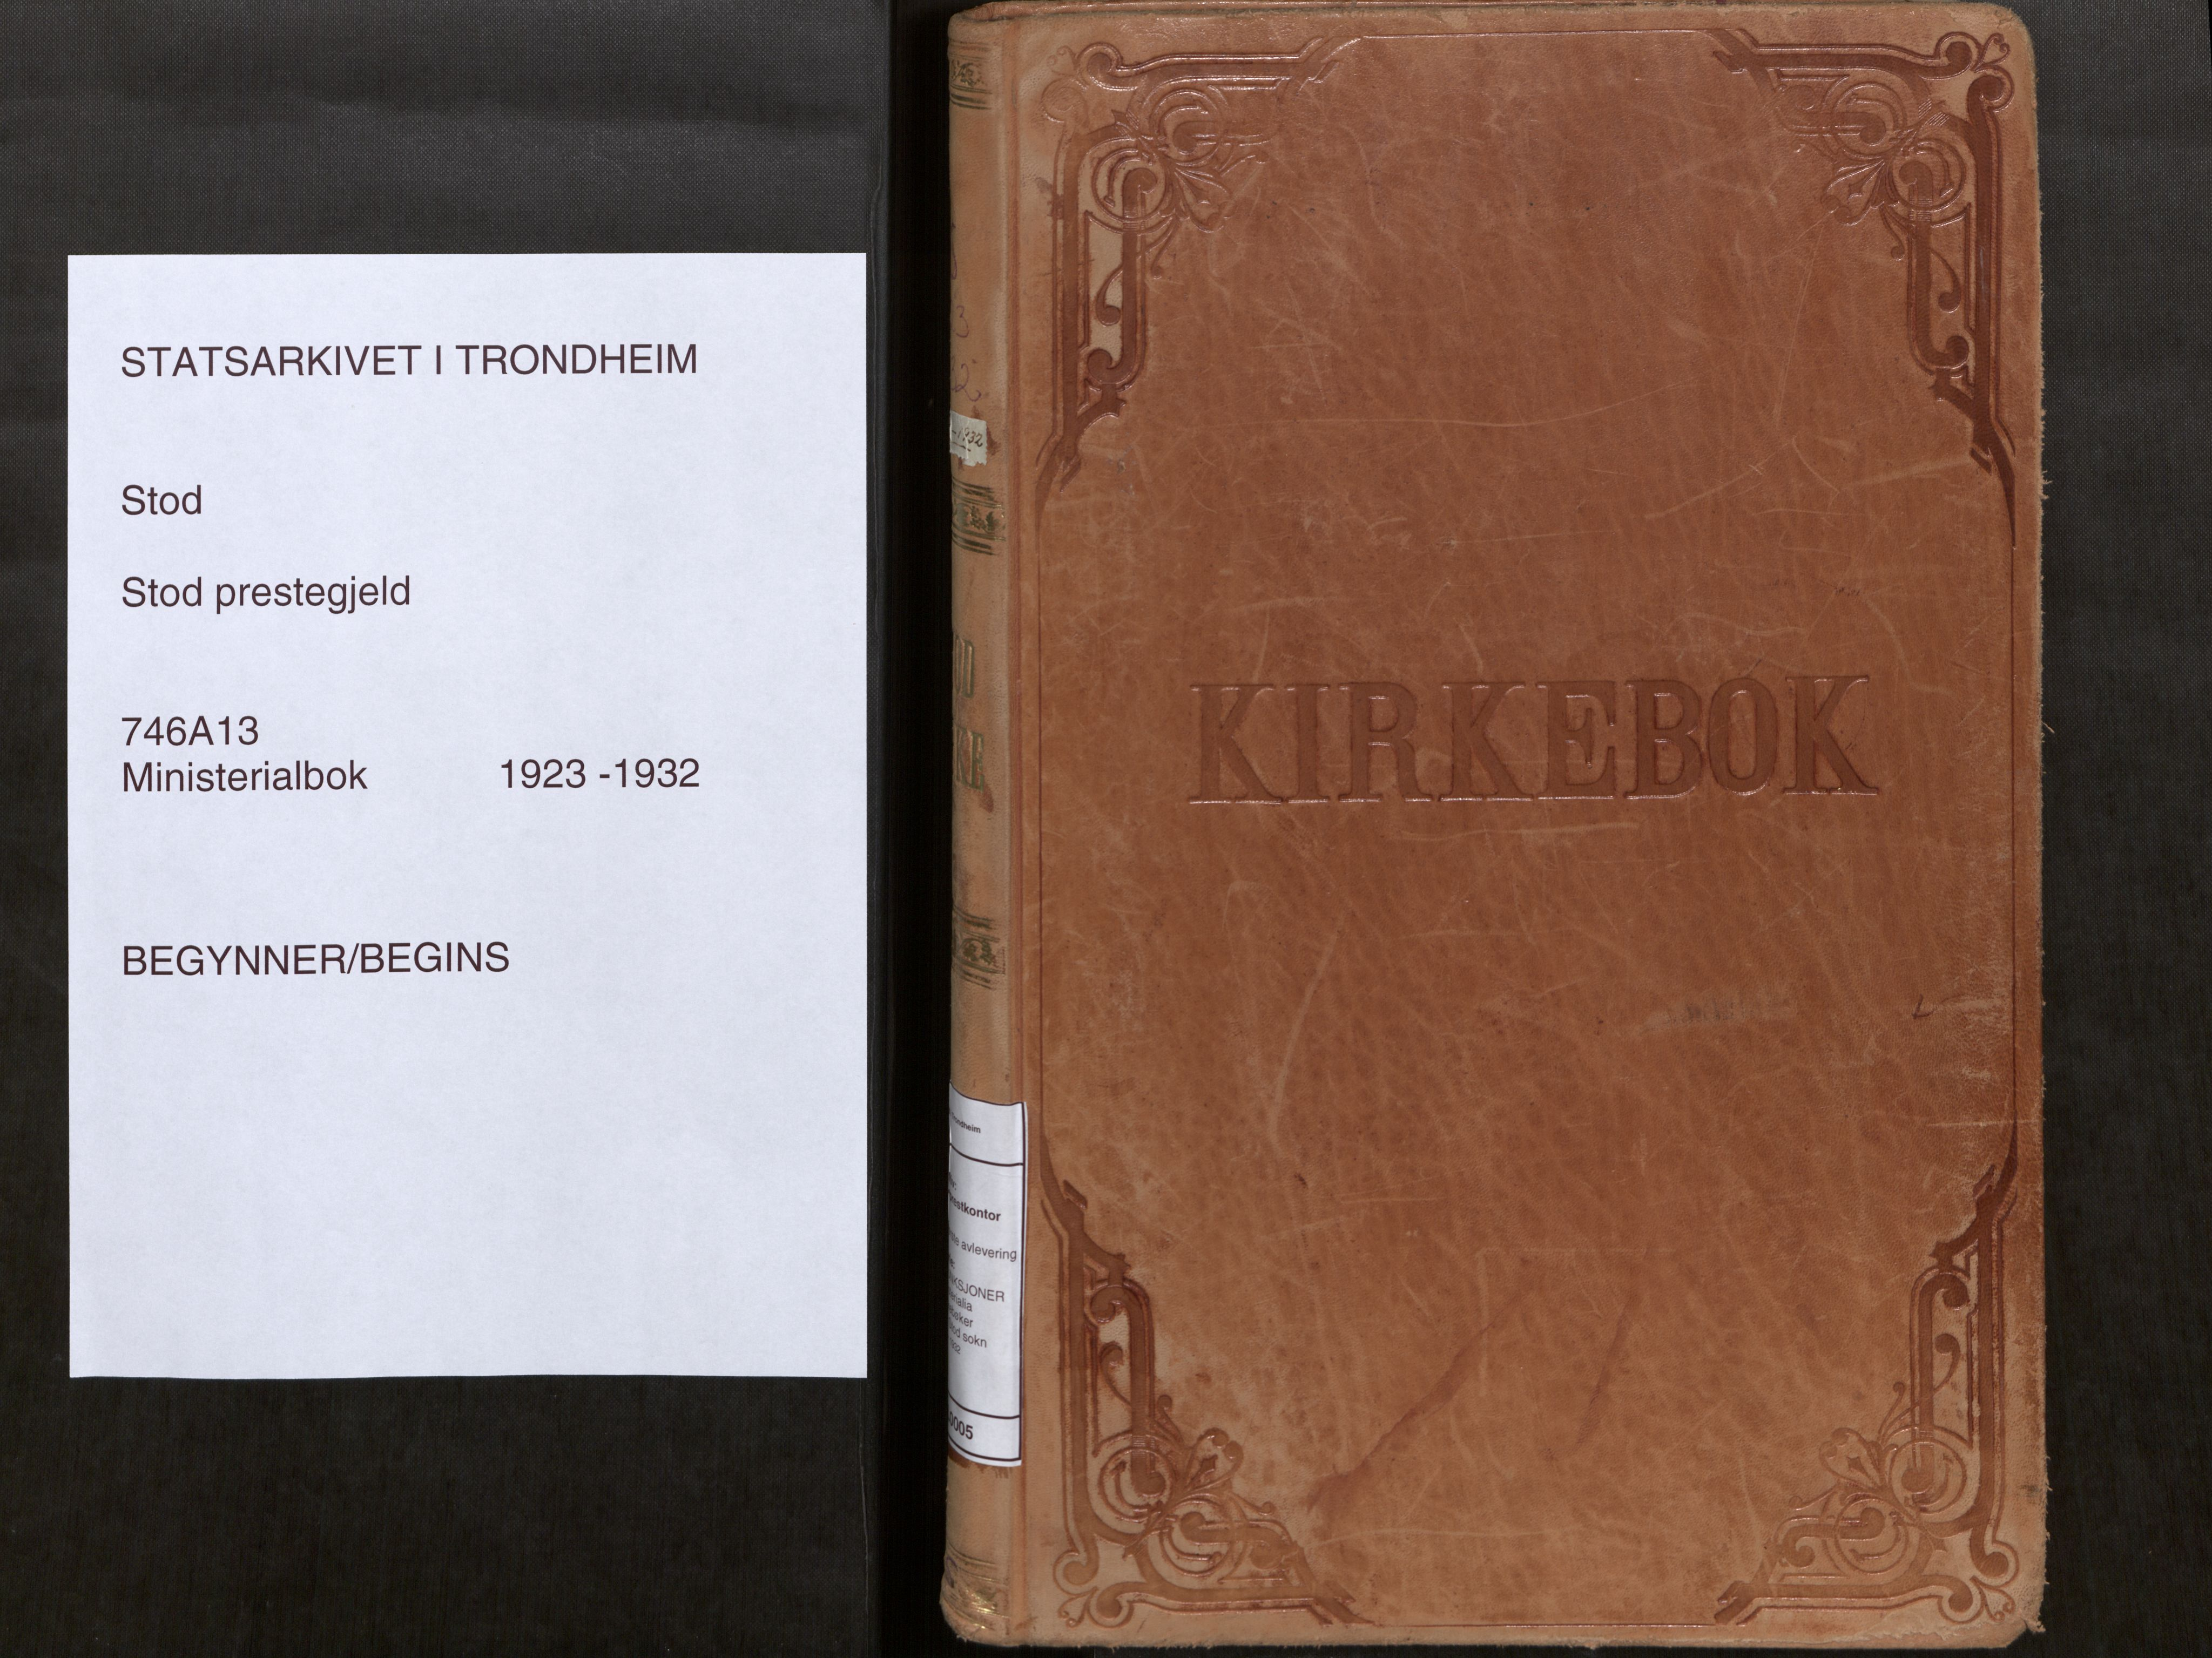 SAT, Stod sokneprestkontor, I/I1/I1a/L0005: Parish register (official) no. 5, 1923-1932